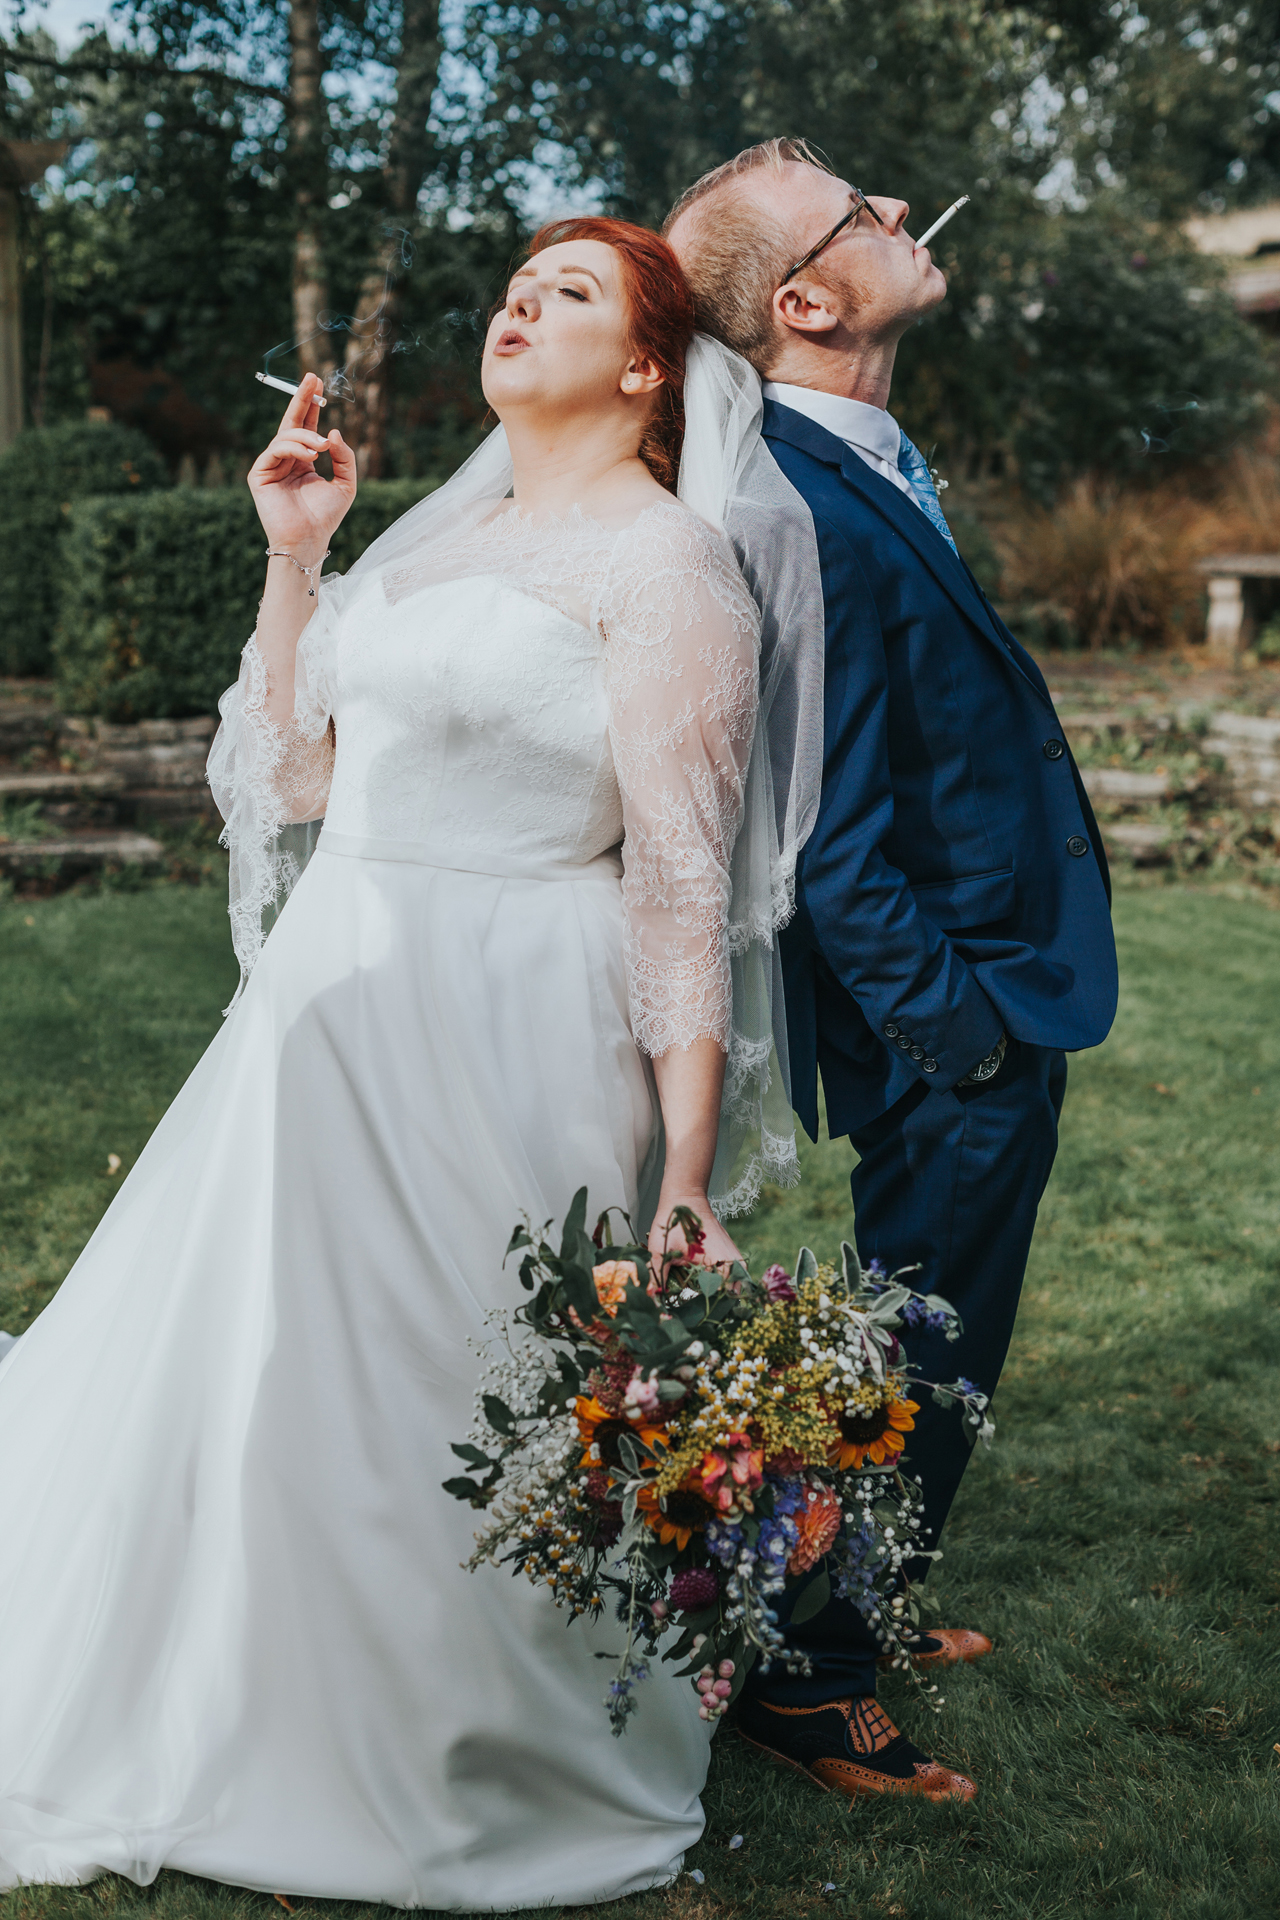 Bride and Groom posing back to back with their fags.